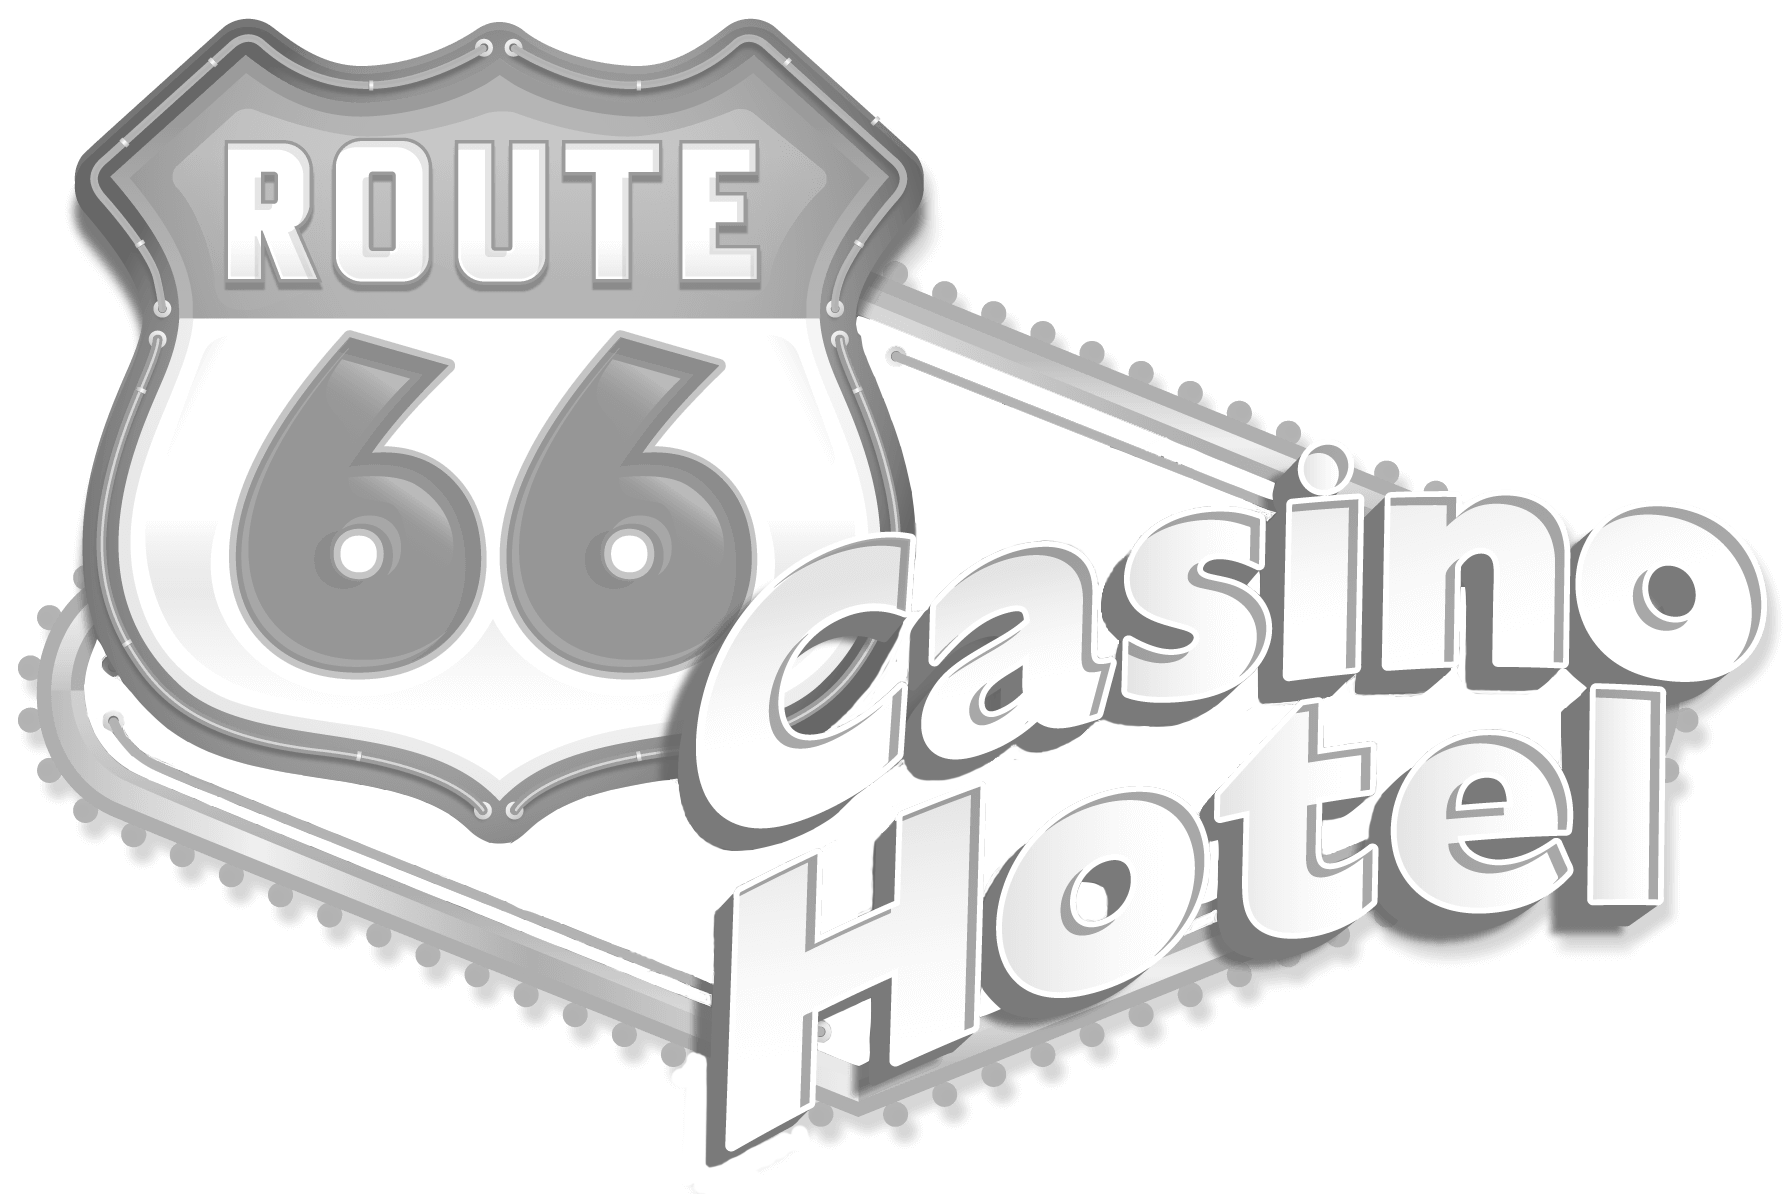 route_66_hotel_1